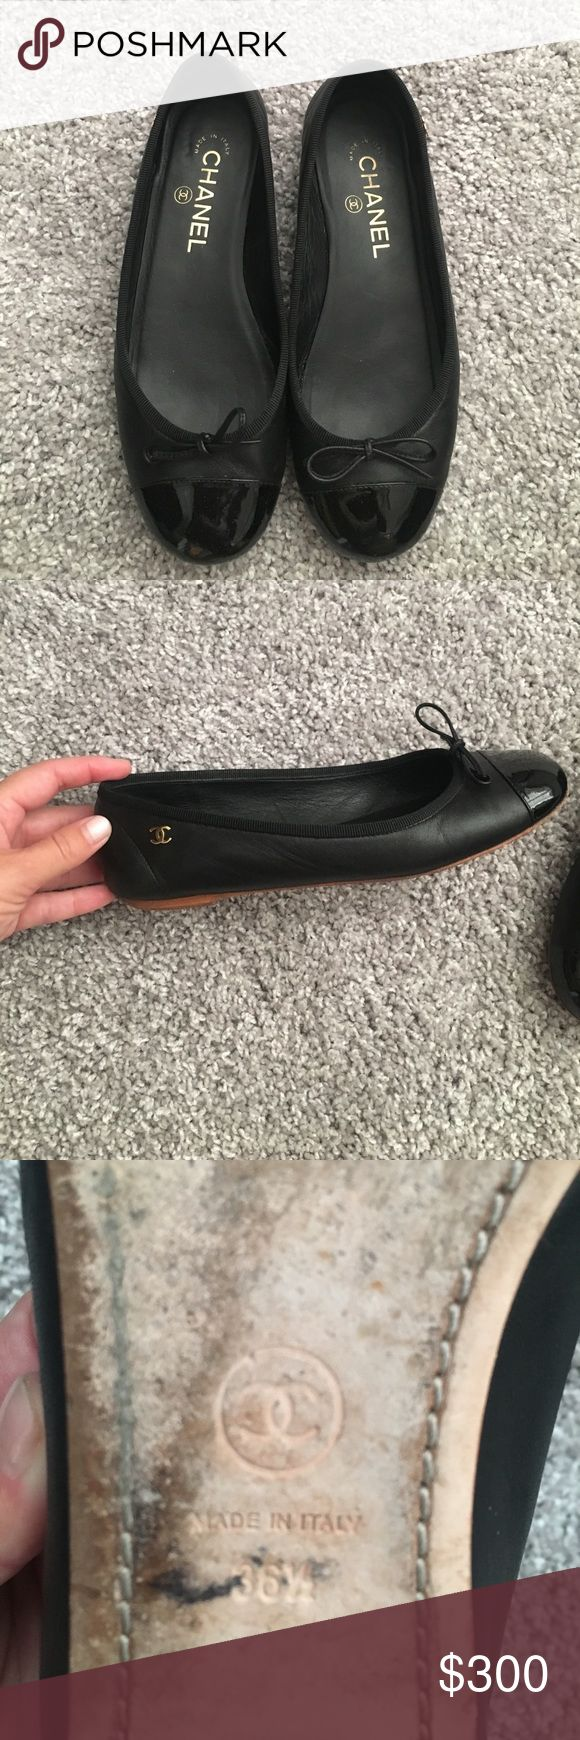 Chanel ballet flats Very comfortable black flats. Goes with everything! CHANEL Shoes Flats & Loafers